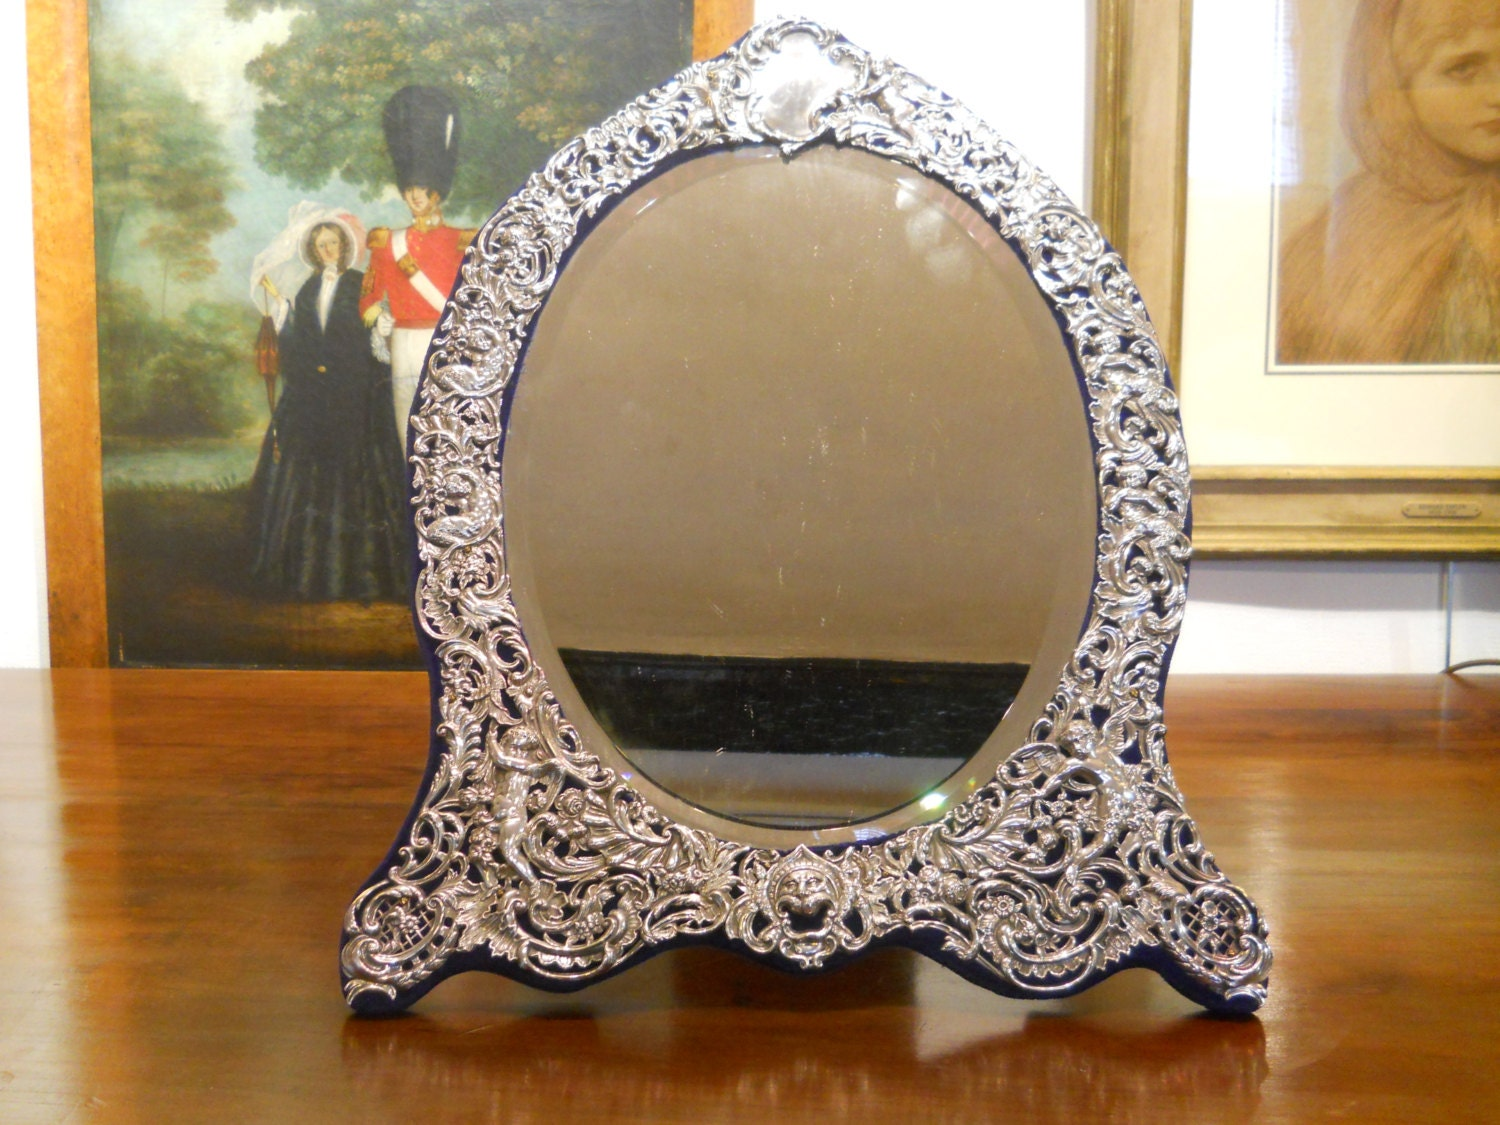 Huge English antique silver 19th century Victorian dressing table mirror 20 x 15 inches by William Comyns London 1893